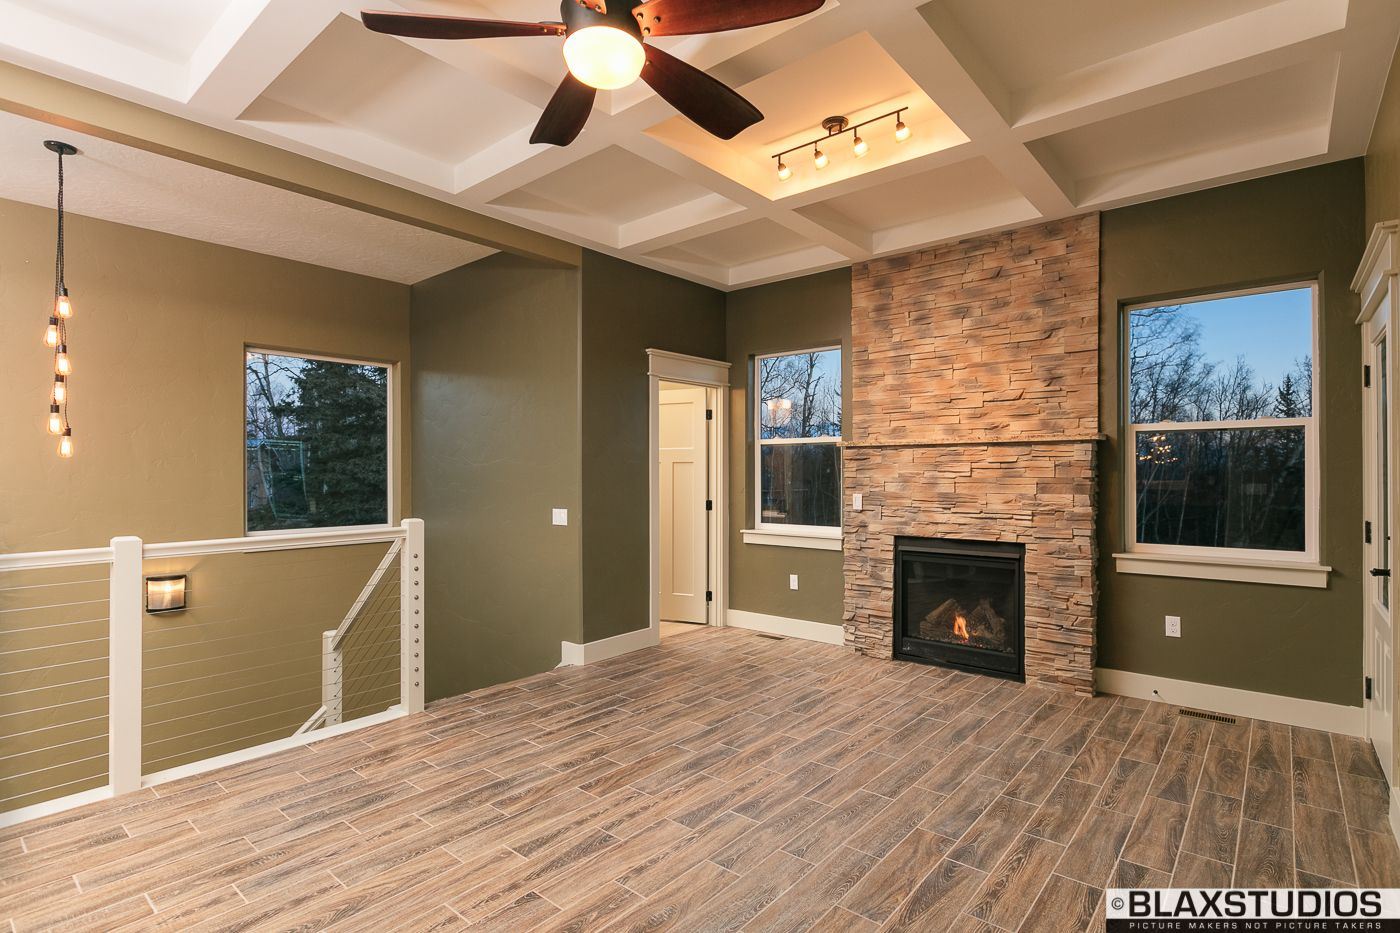 home ambient lighting. Stone Fireplace, Grid Ceiling, And Ambient Lighting. Home Lighting